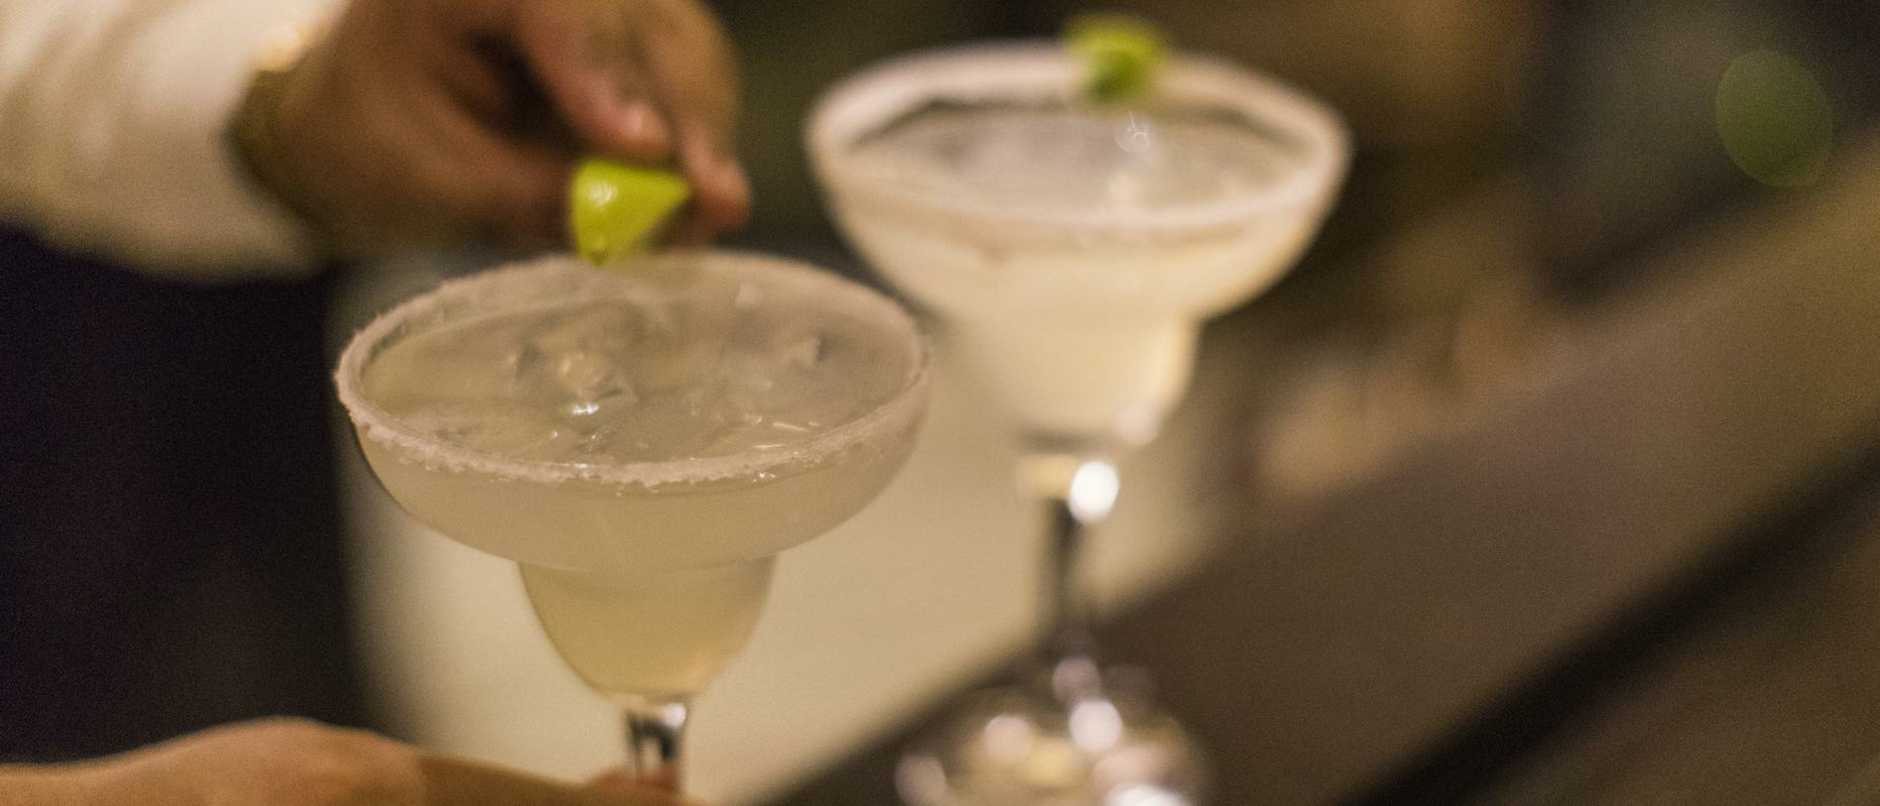 Close-up of an unrecognizable Panamanian bartender putting the final touch on a margarita cocktail by placing a lime wedge on the glass rim.